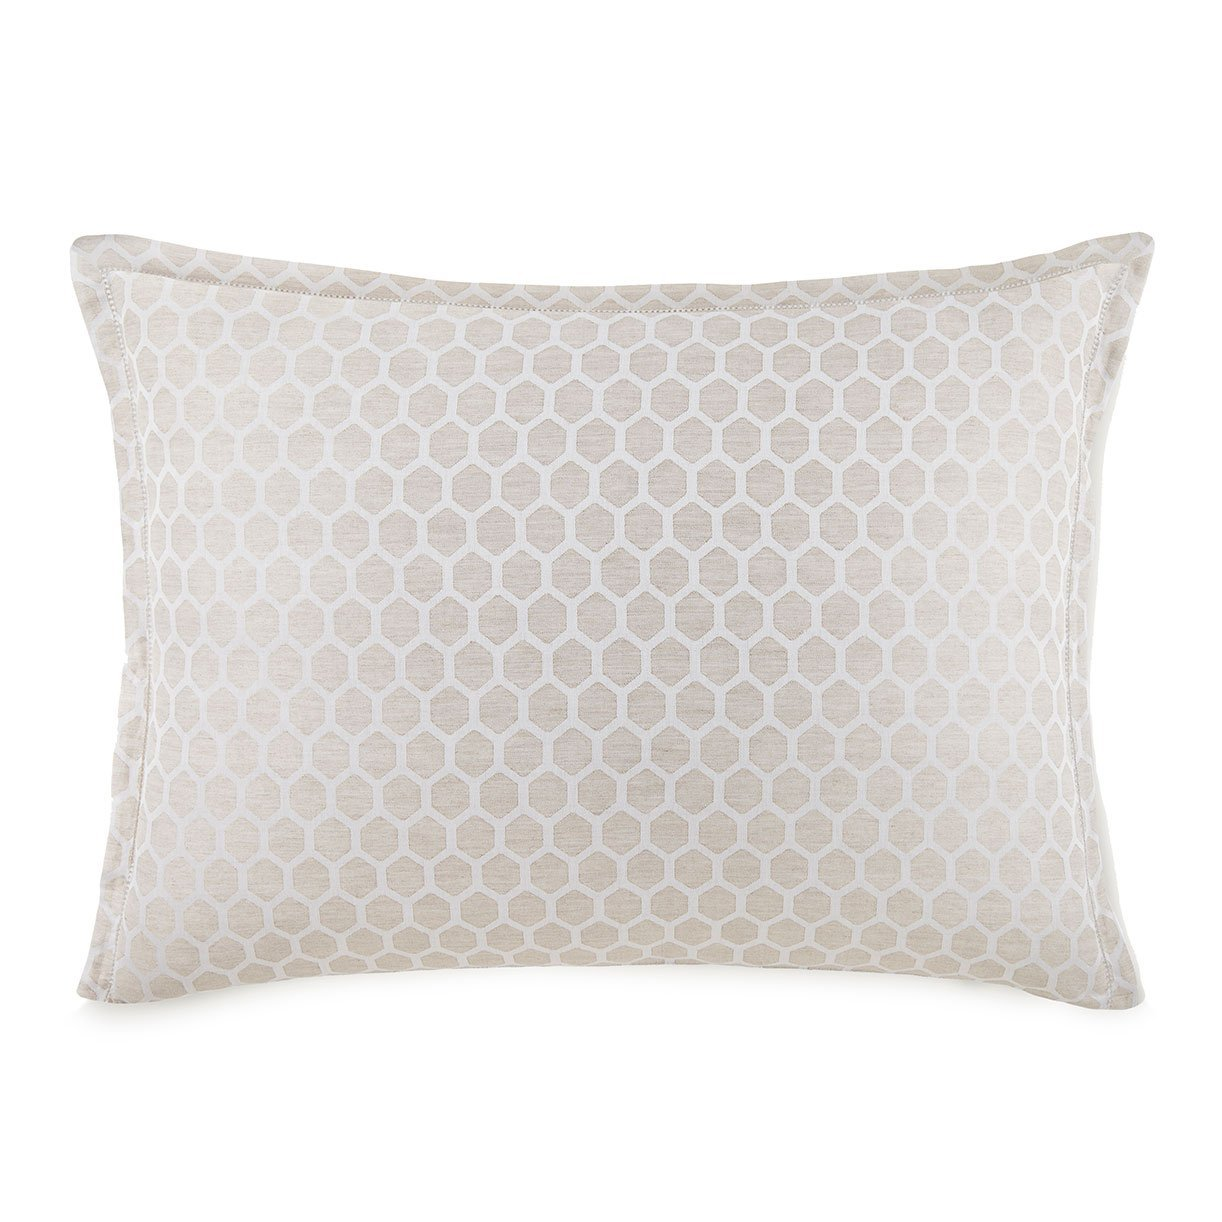 honeycomb patterned pillow sham